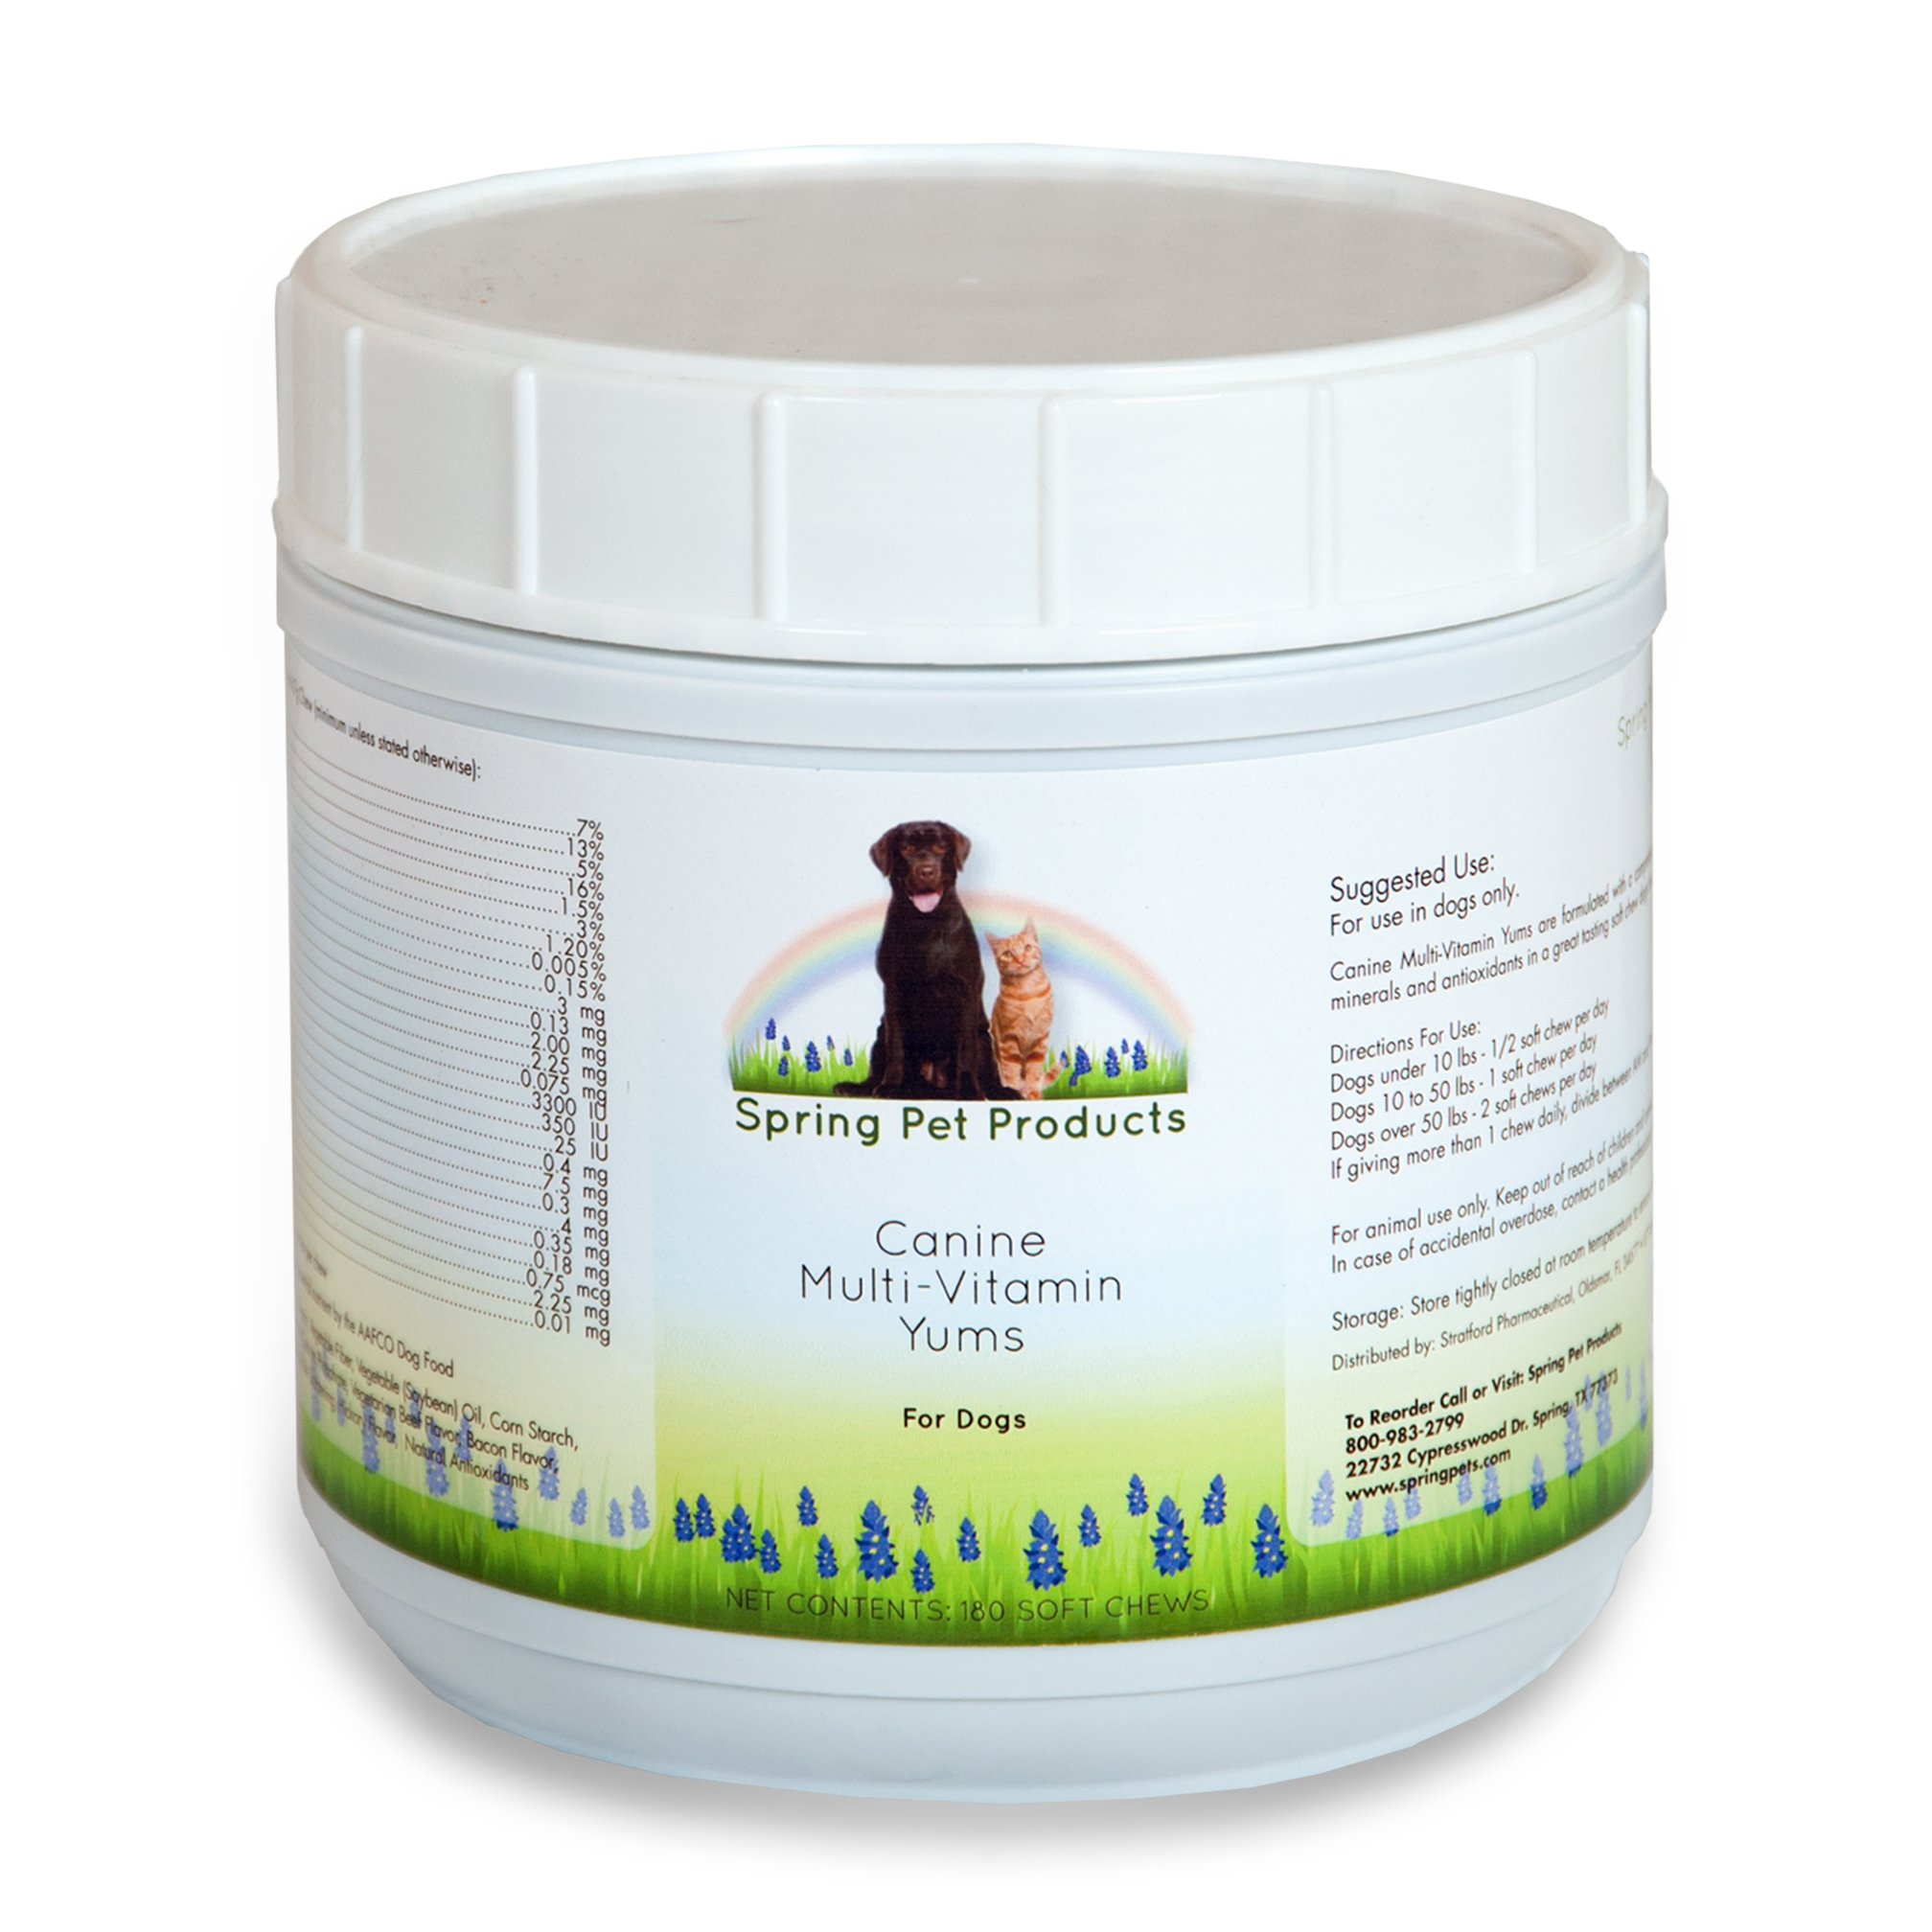 Spring Pet Dog Multi Vitamins & Supplements for Dogs 180 Count - Puppy, Senior, Agility, Working Canines Soft Chewable Tabs - Minerals Plus Vitamin E -Skin & Coat - Veterinarians Choice Made in USA by Spring Pet Products